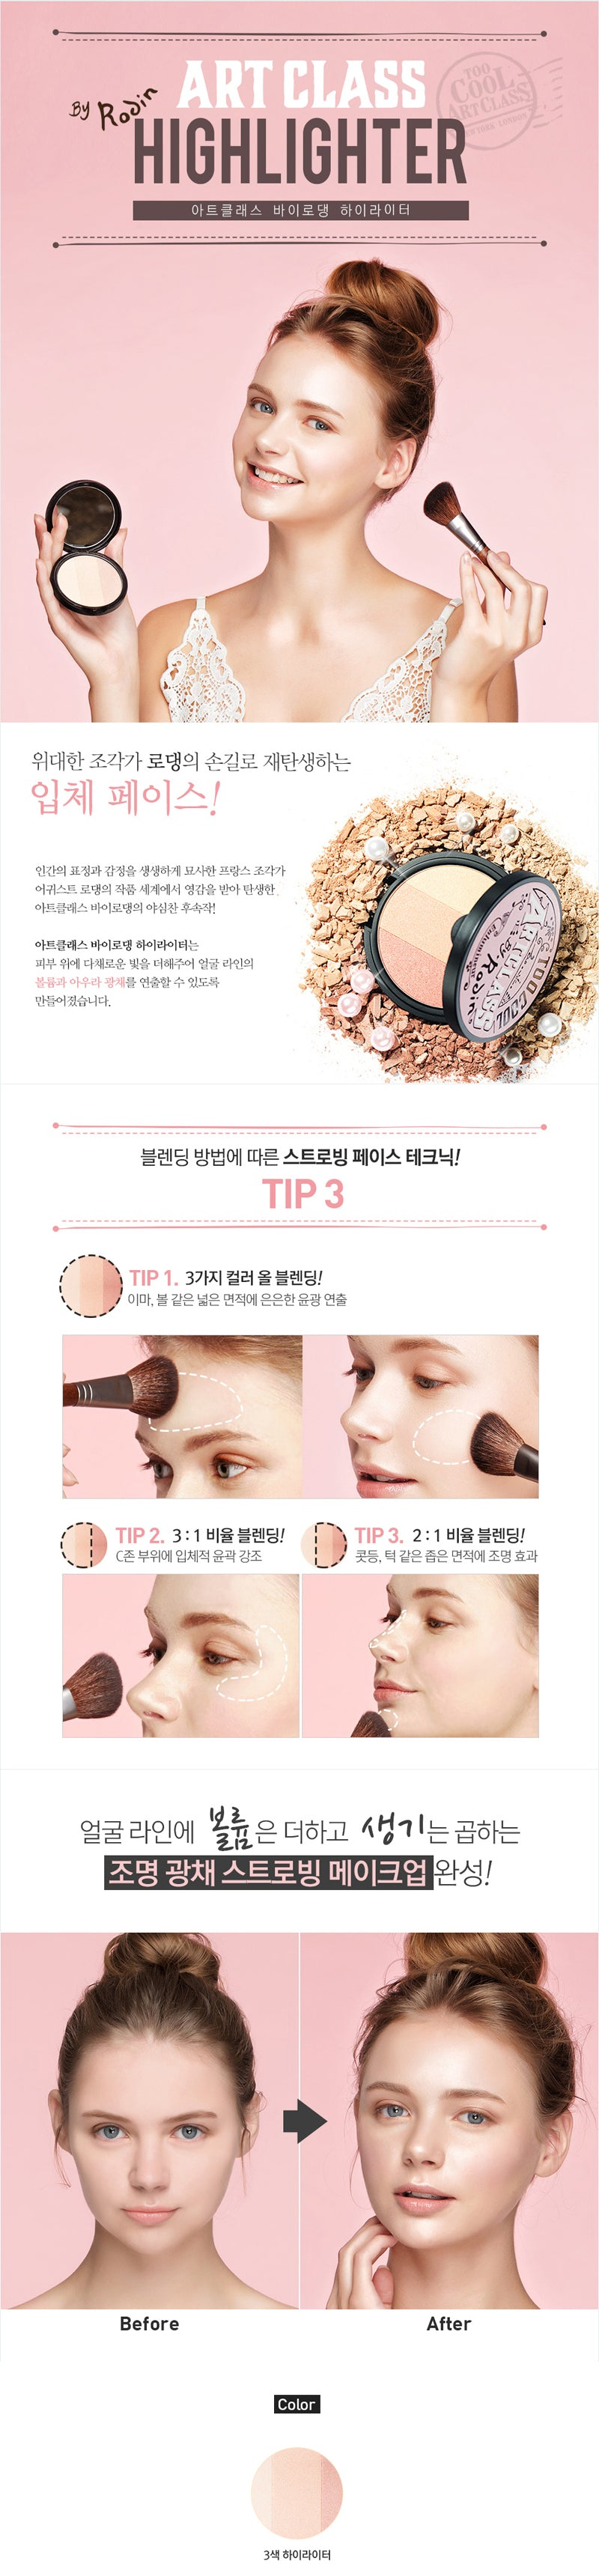 Pre-Order] Too Cool For School Art Class By Rodin Highlighter 11g –  Beautibae